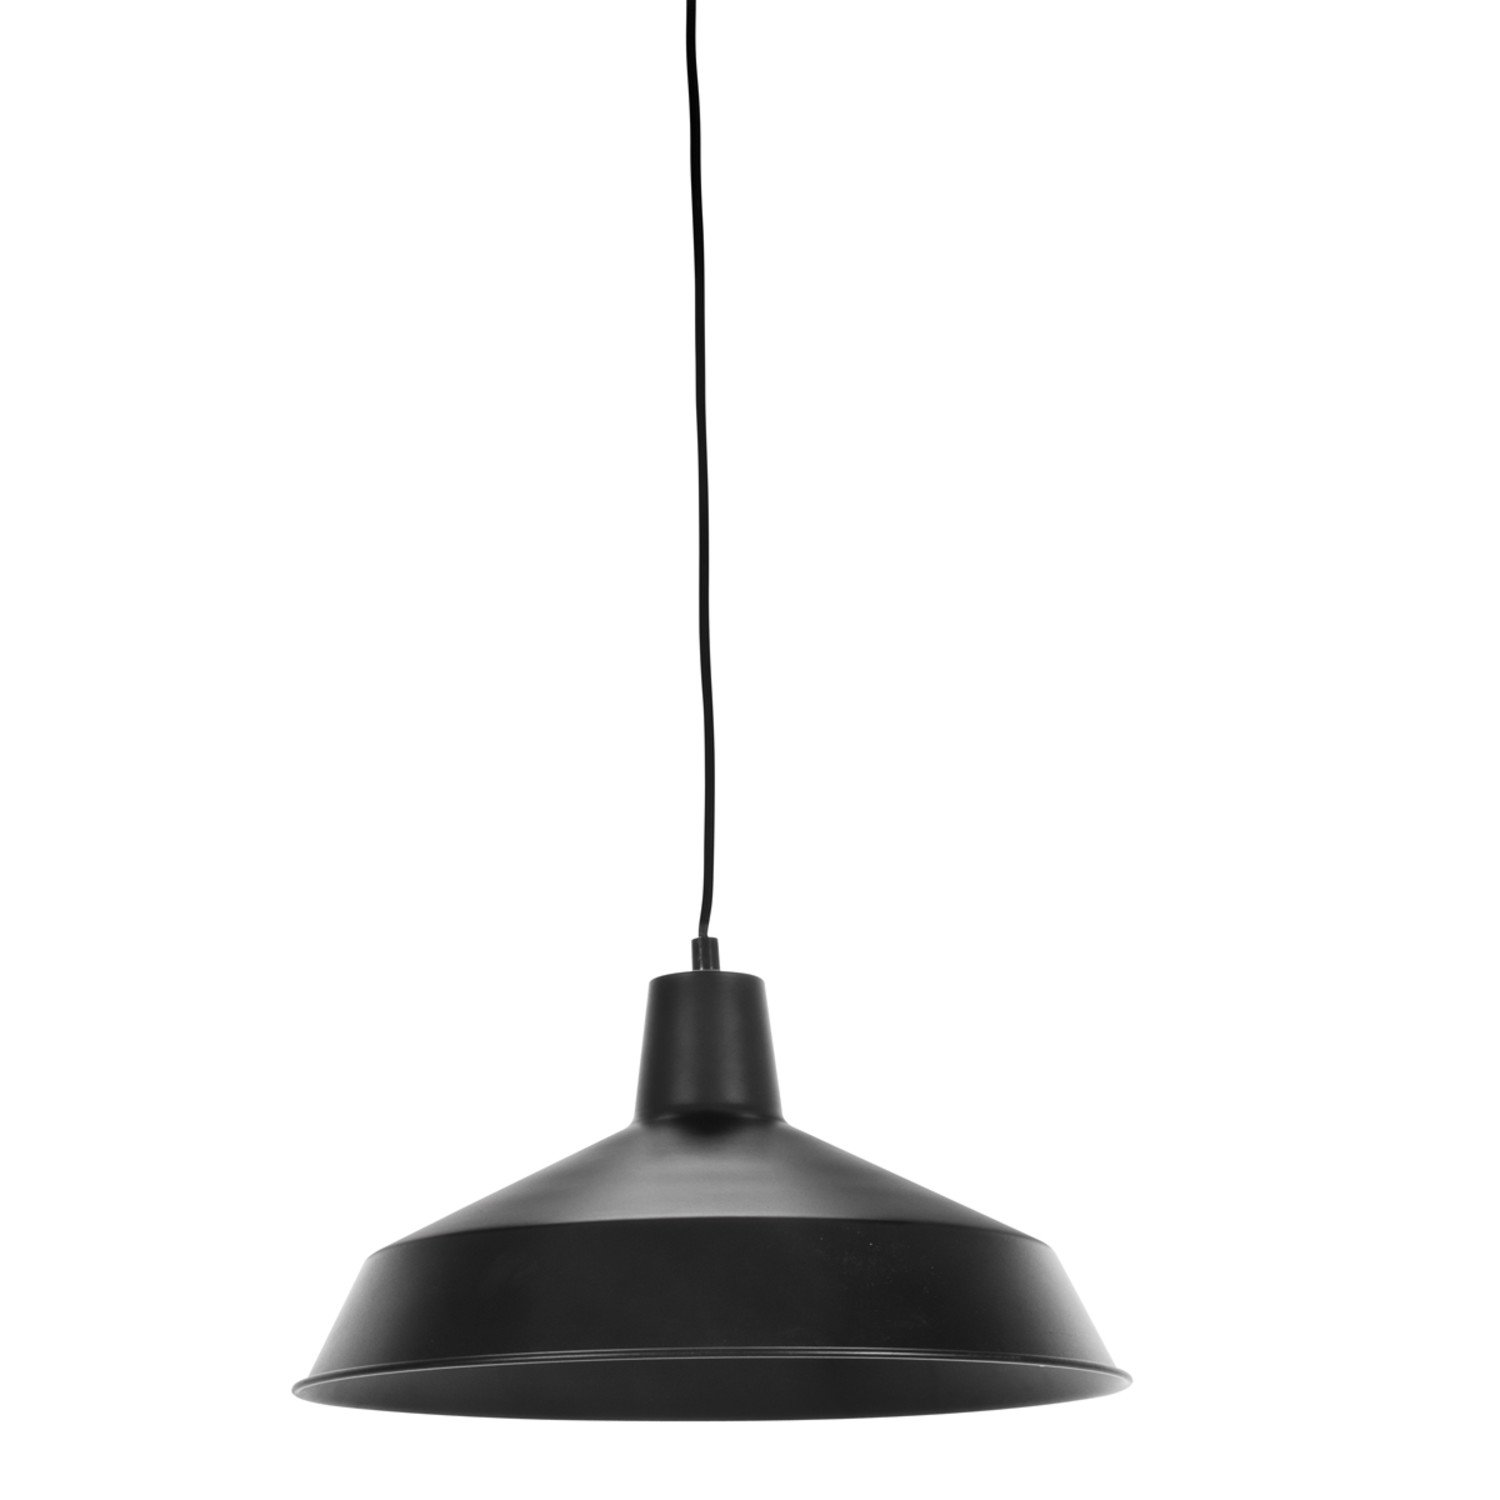 Pendant Light Fixtures Lighting Ceiling Fans How To Install A Fan Electrical Online Globe Electric 65151 Barnyard 15 Inch Matte Black Finish